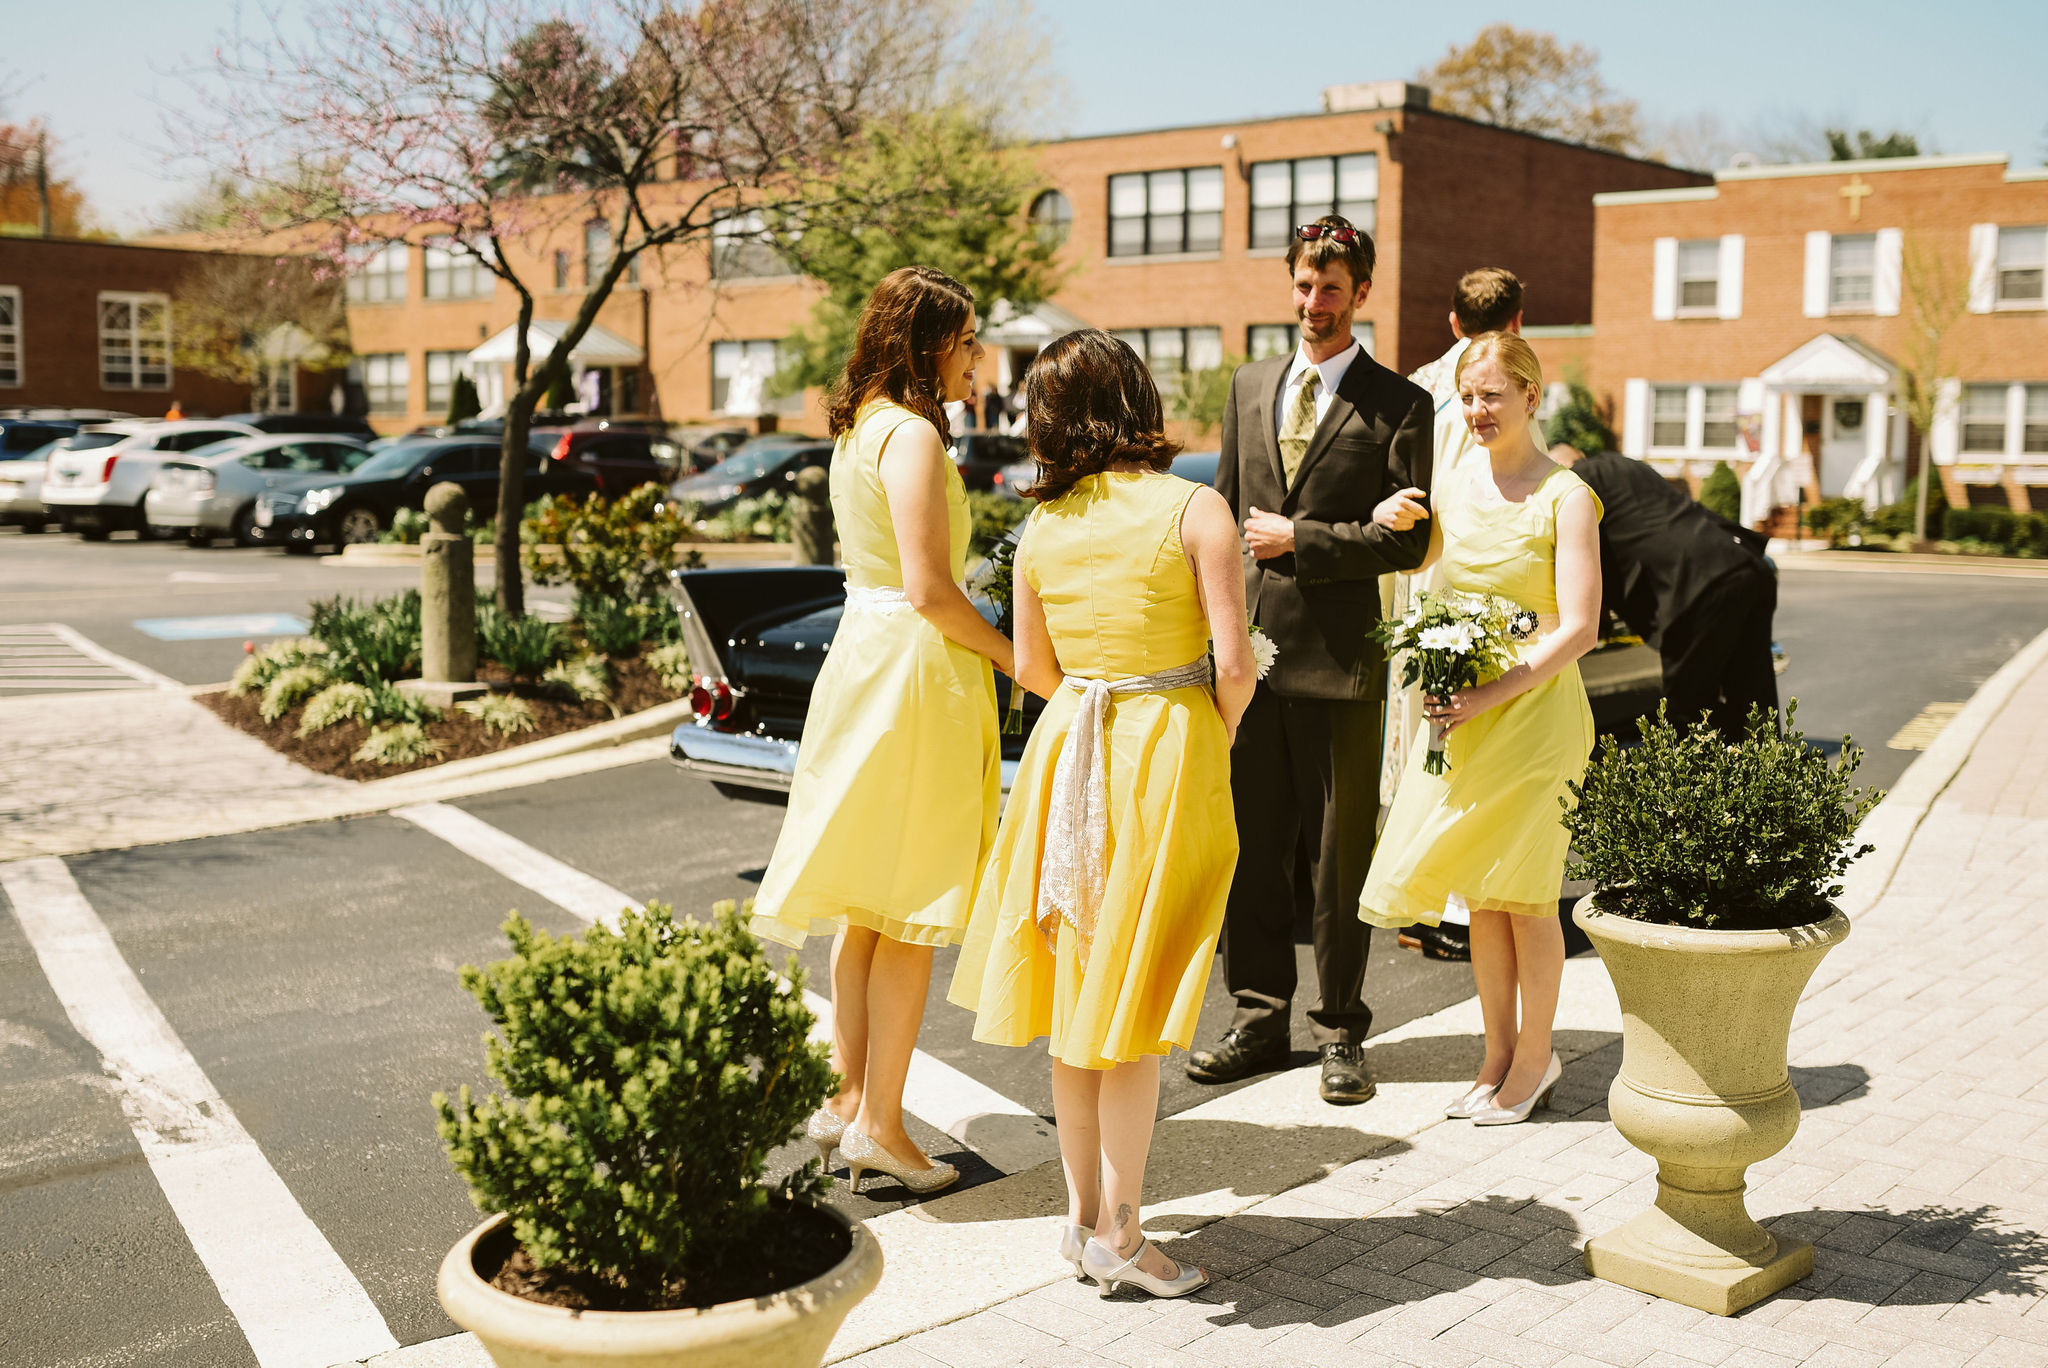 Baltimore, Church Wedding, Maryland Wedding Photographer, Vintage, Classic, Arriving at the Church, Yellow Bridesmaids Dresses